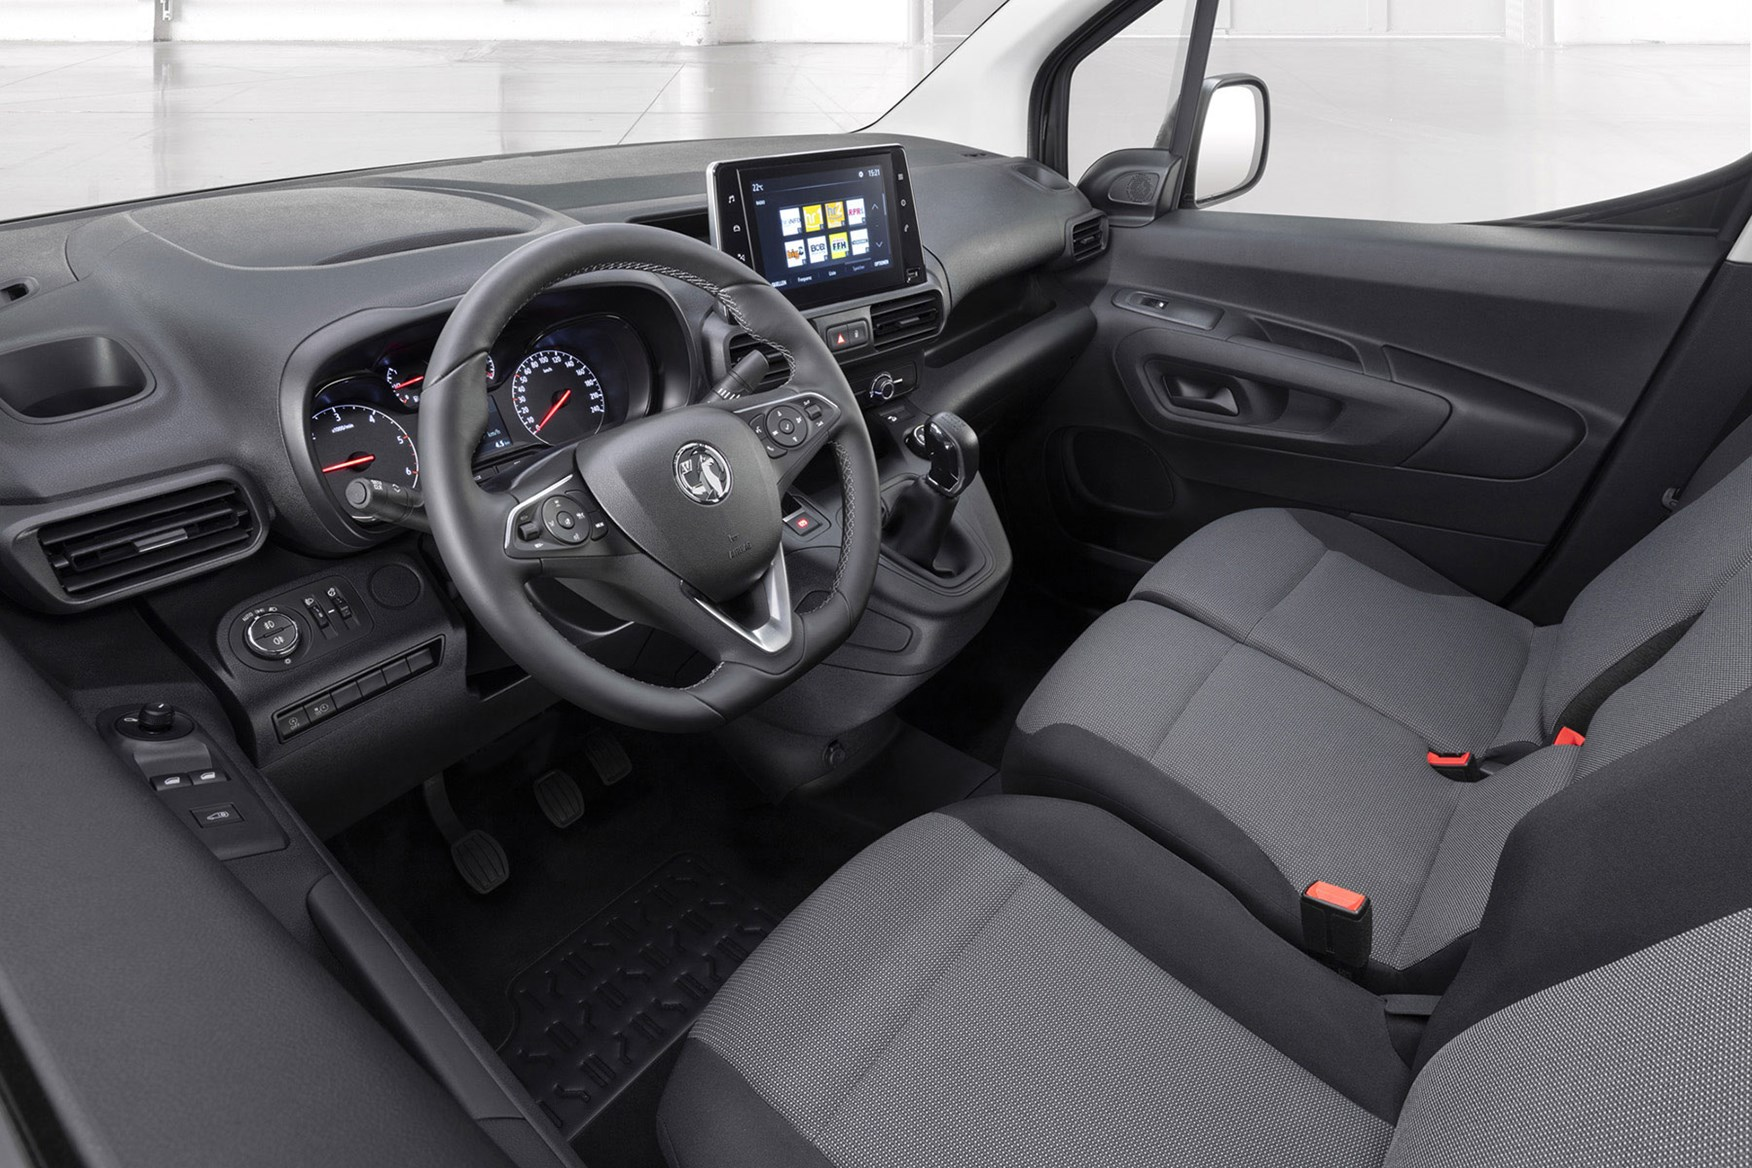 Vauxhall Combo 2019 review - cab interior